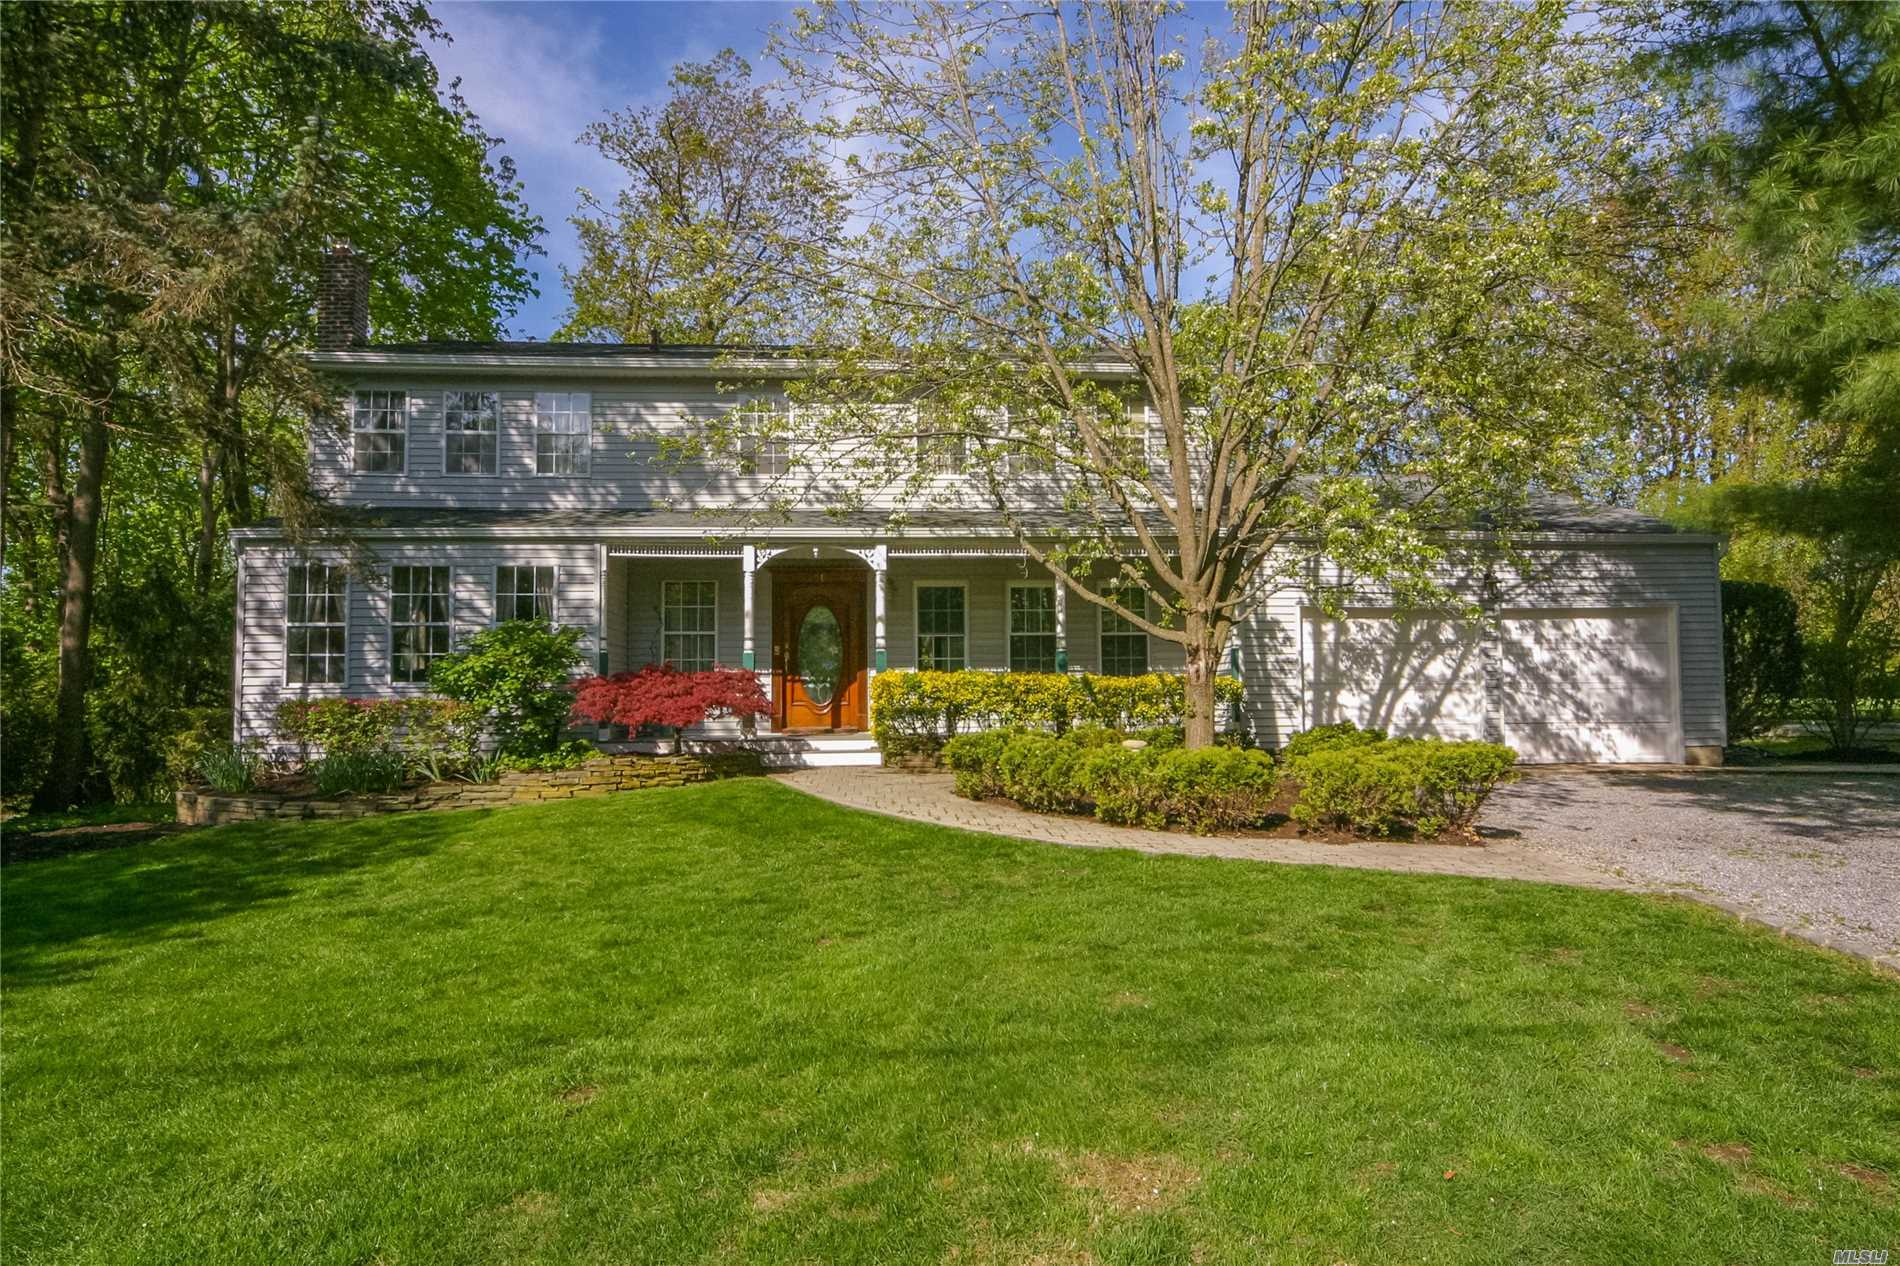 Follow Your Heart Home! Majestic 5-BD, 3-BA Colonial on 1/3-Acre. Warm & inviting home w/spacious rms, wood flrs & upd windows. Sun drenched EIK w/gas cooking & French drs to deck. Family Rm w/stone fpl & skylights. 1st Floor AuPair room/Laundry. Mstr Bdrm w/full bth & WIC. Part finished basement w/sliders to yard. Private, Fenced yard w/large deck (1-Yr old) & brick patio. Gas/HW heat. Taxes being grieved. Be the proud owner of this gracious home situated at the gateway to Huntington Bay.